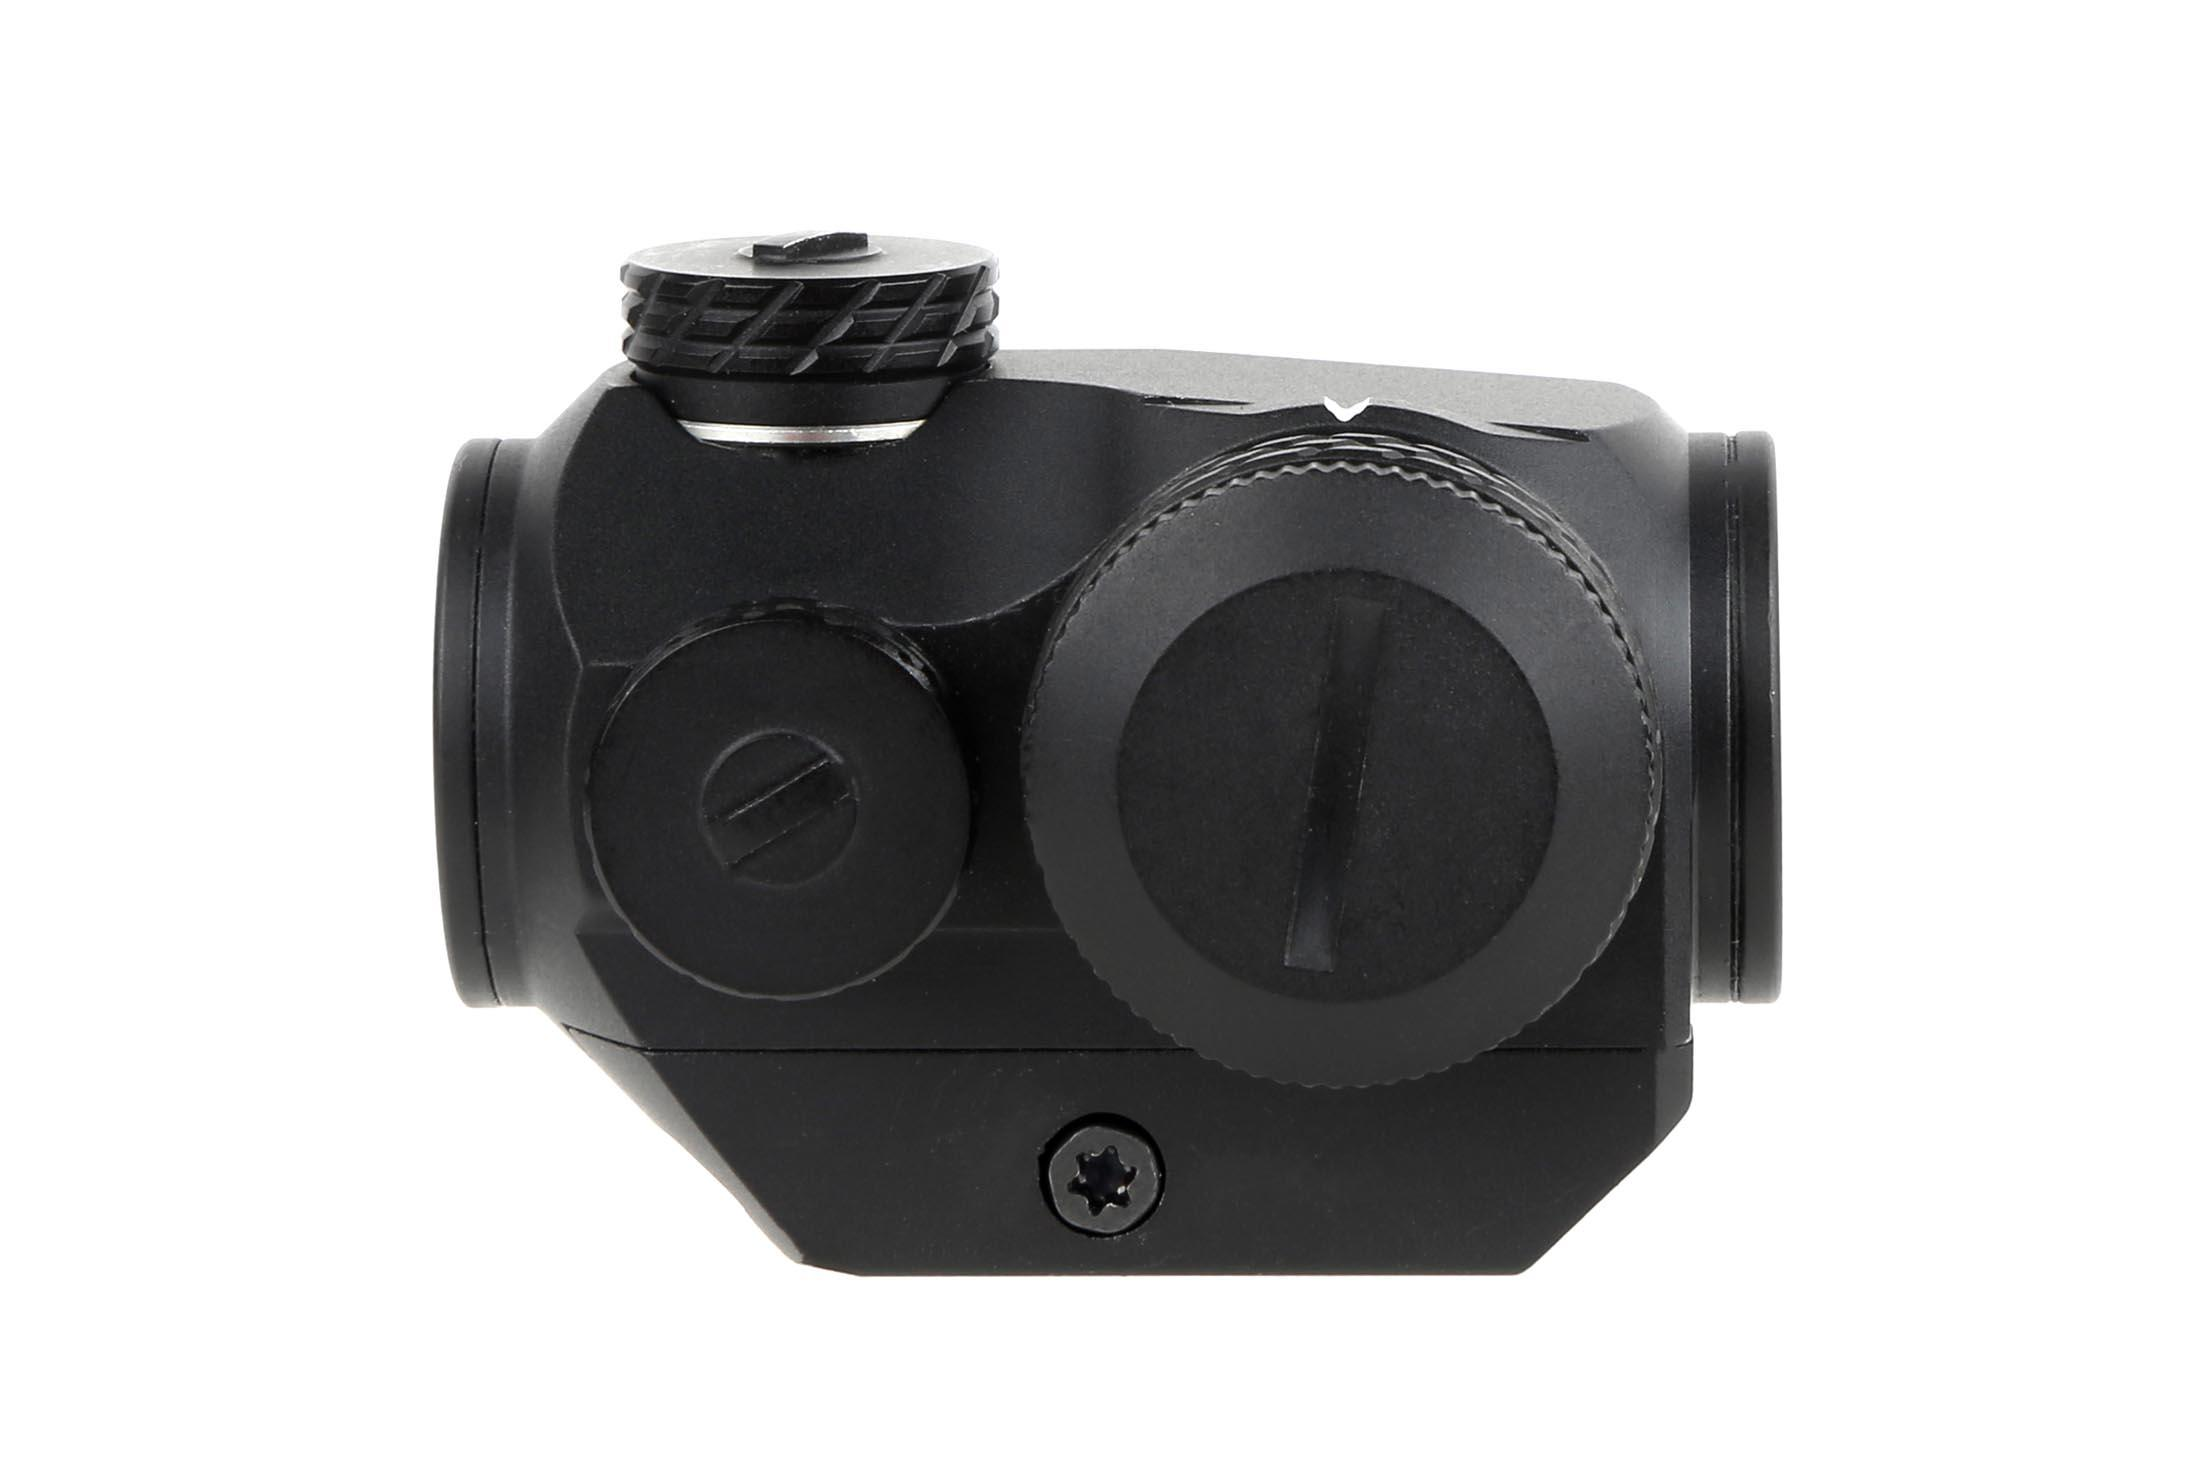 The Advanced Micro Red Dot sight from Primary Arms is extremely low profile and durable